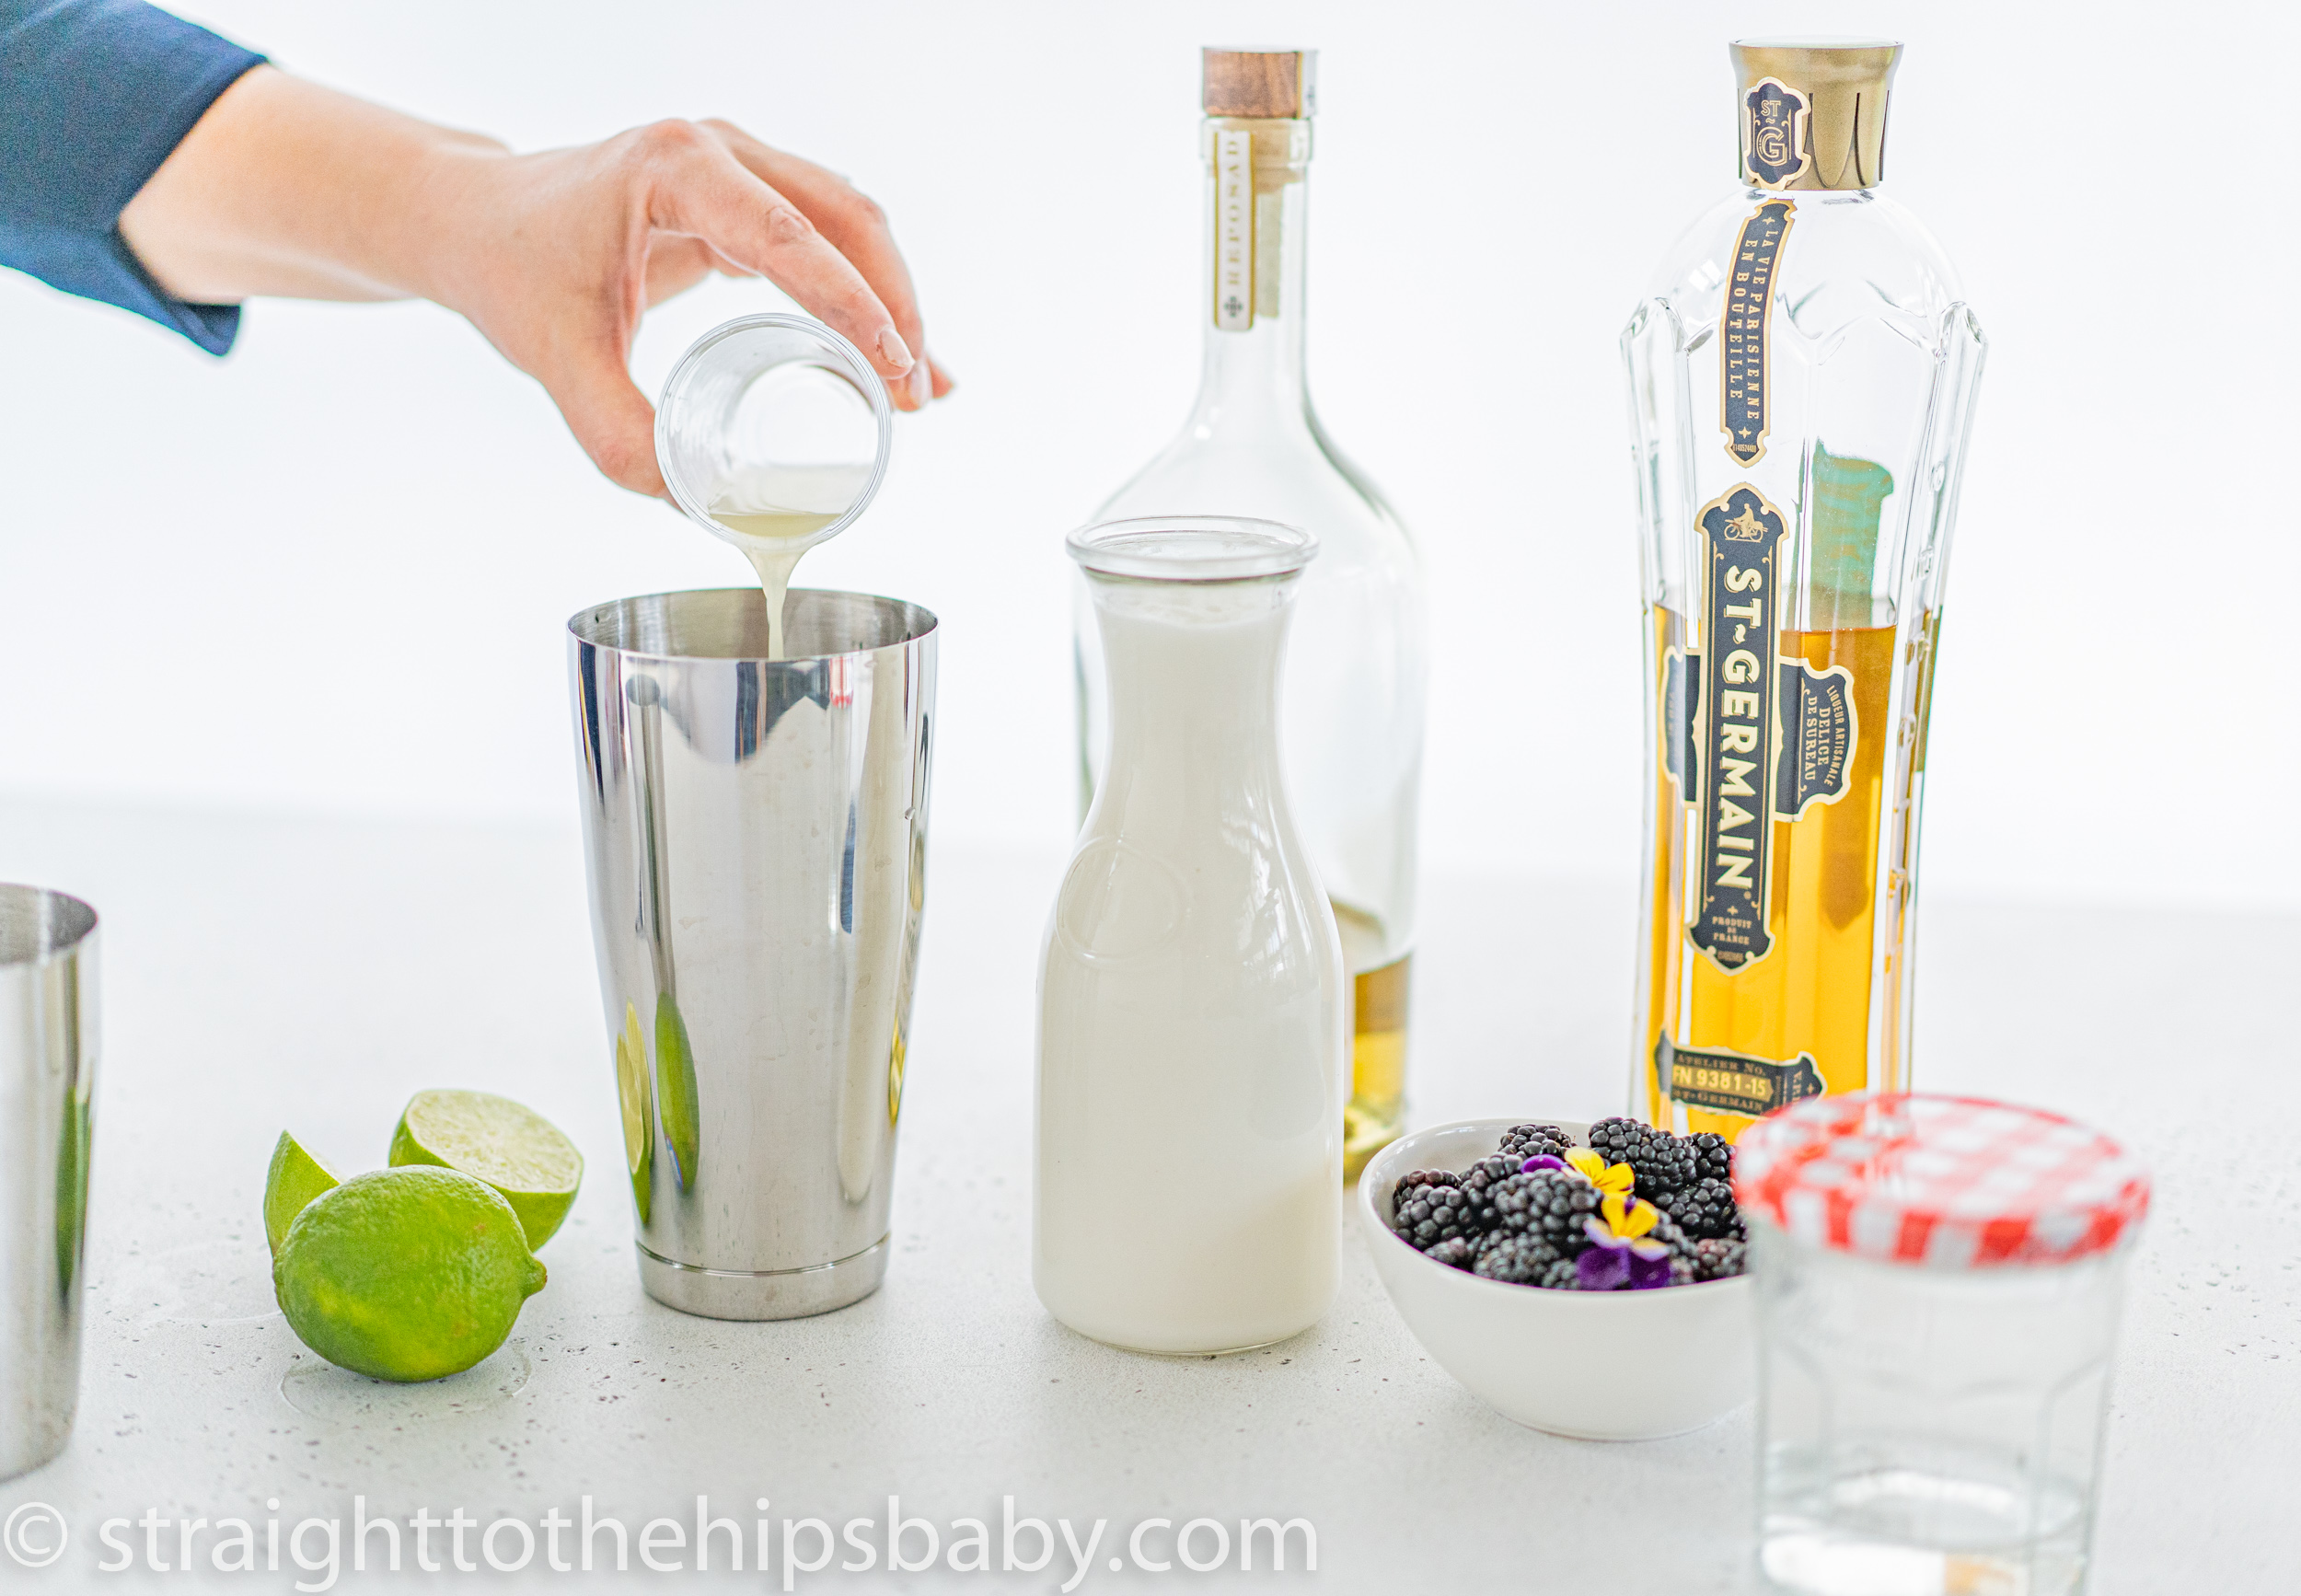 pouring coconut milk into a cocktail shaker, with bottles of St Germain and tequila in the background